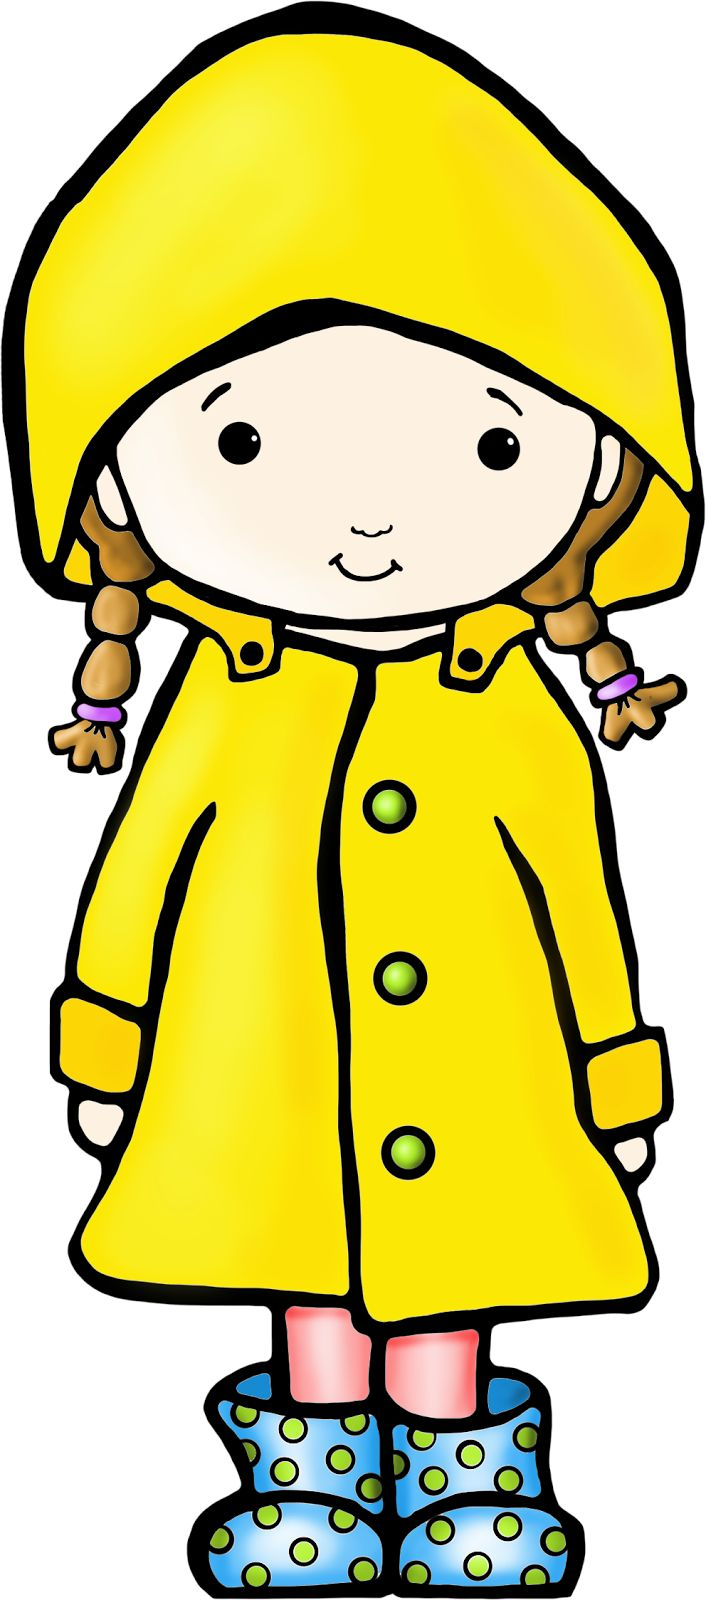 FREE! Grab this little Gumboot Girl clip art today! Perfect for Spring, and the black and white version is also free - Enjoy! Whimsy Workshop Teaching http://whimsyworkshop.blogspot.ca/